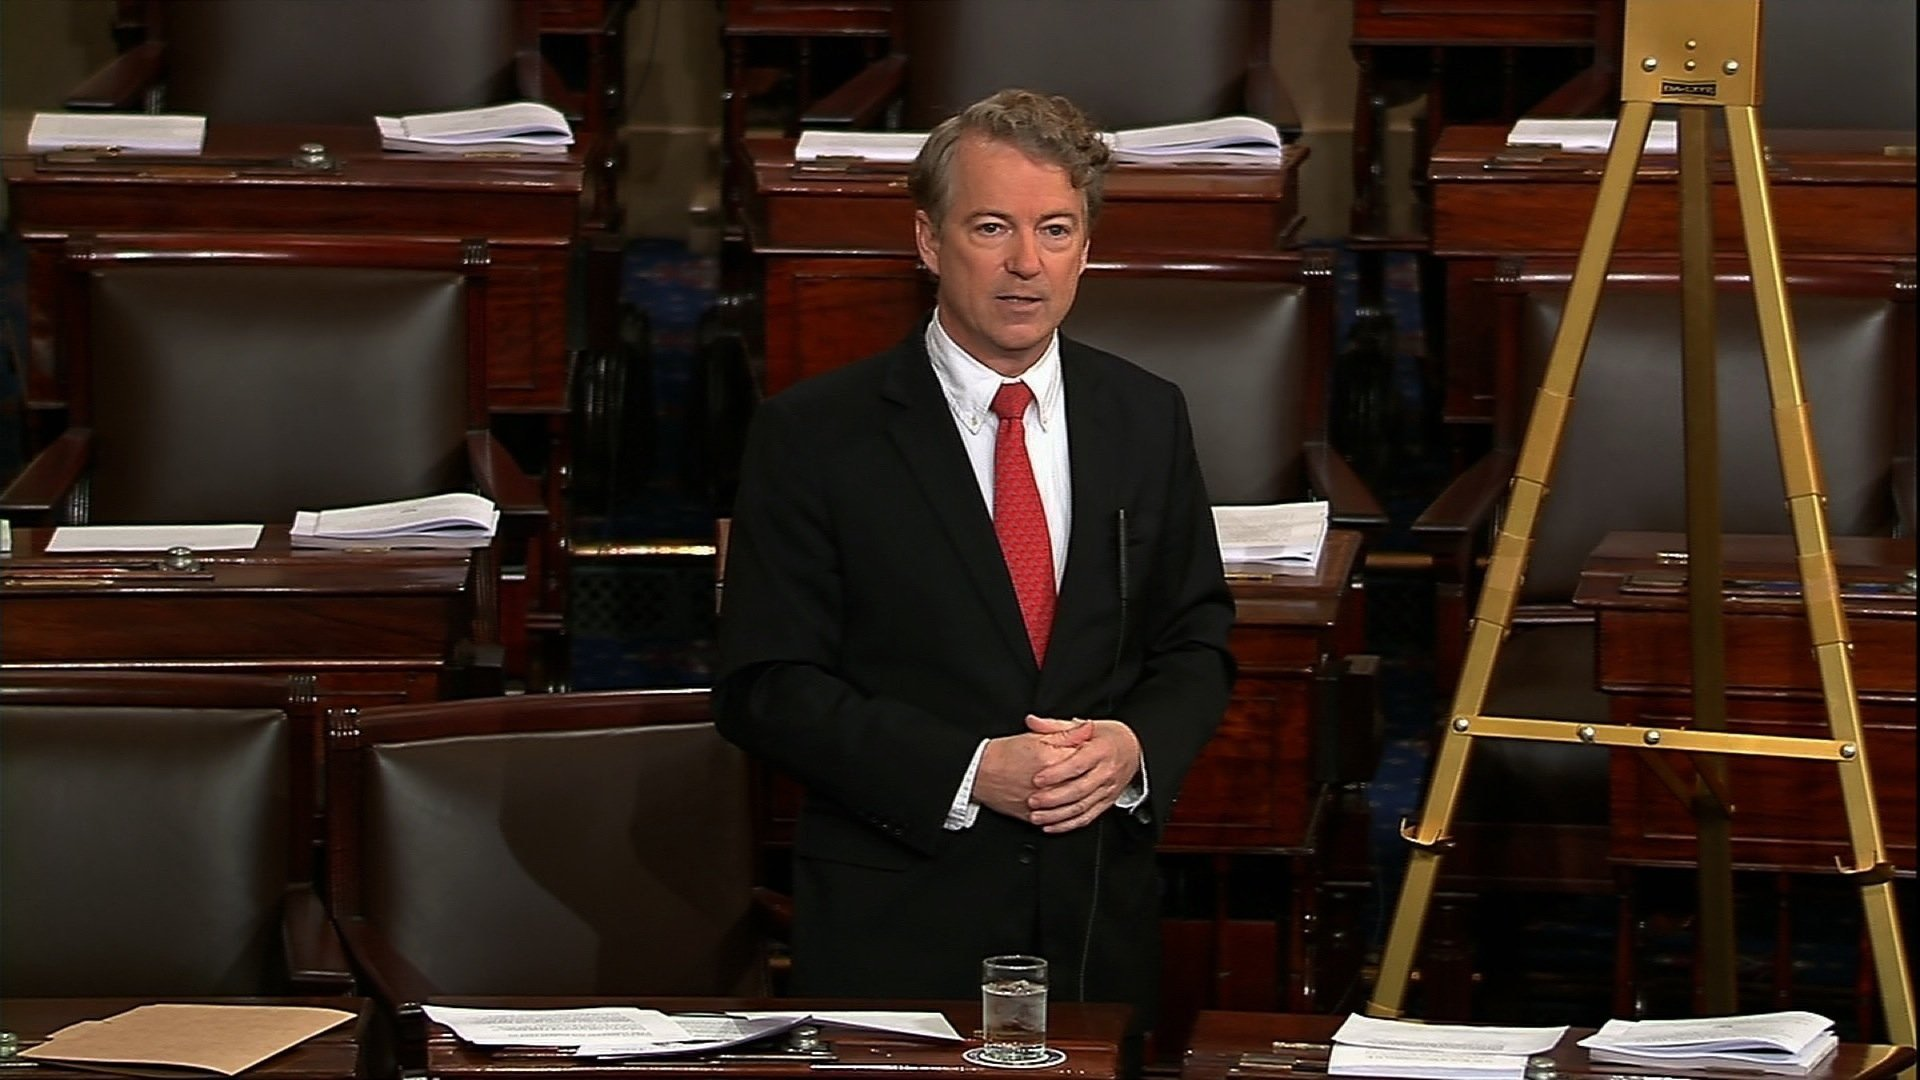 #SwampWatch: Rand Paul Has Lindsey Graham Pegged